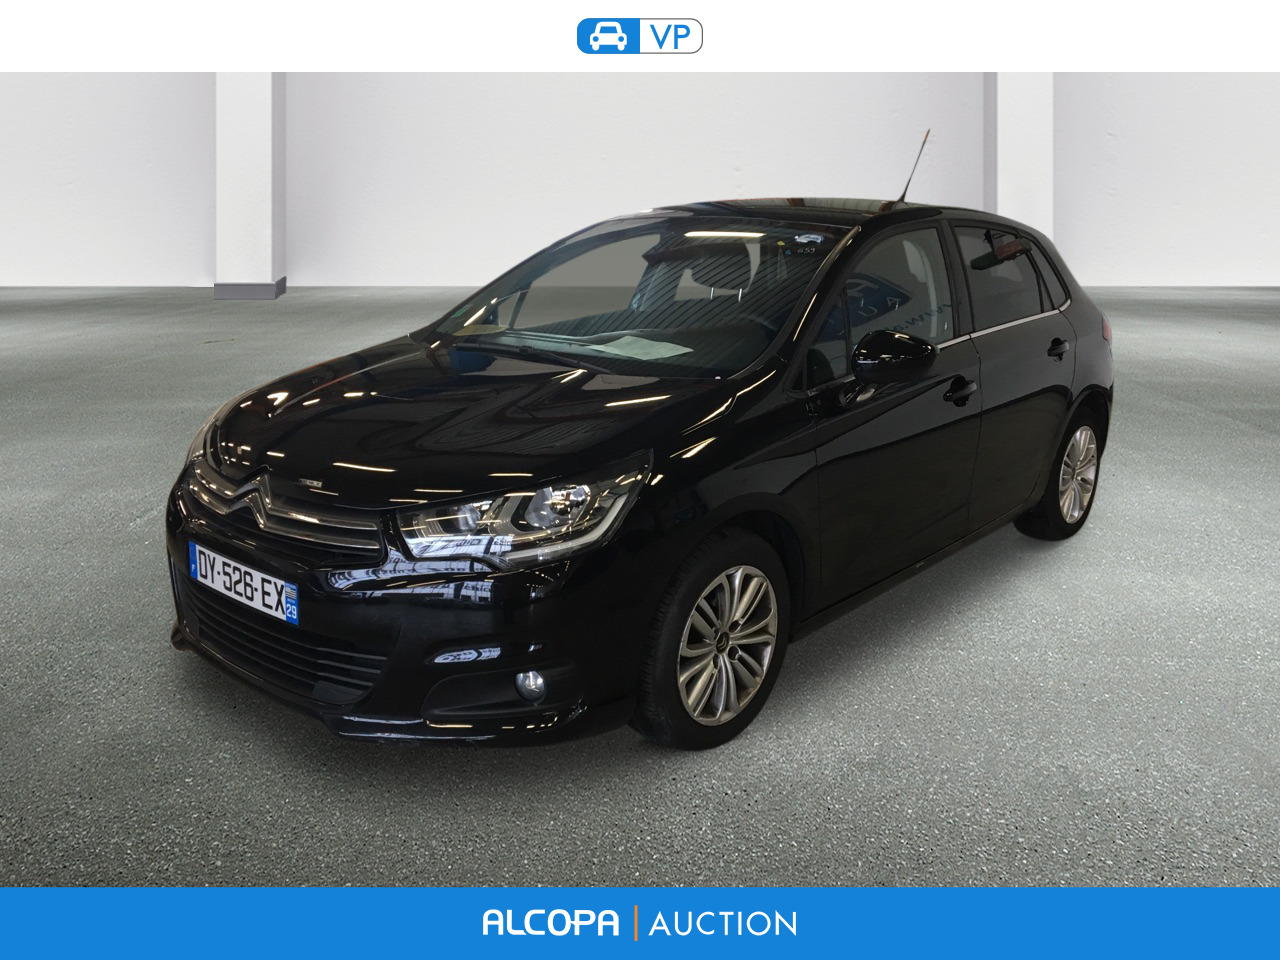 citroen c4 c4 bluehdi 100ch millenium business s s 86g alcopa auction. Black Bedroom Furniture Sets. Home Design Ideas